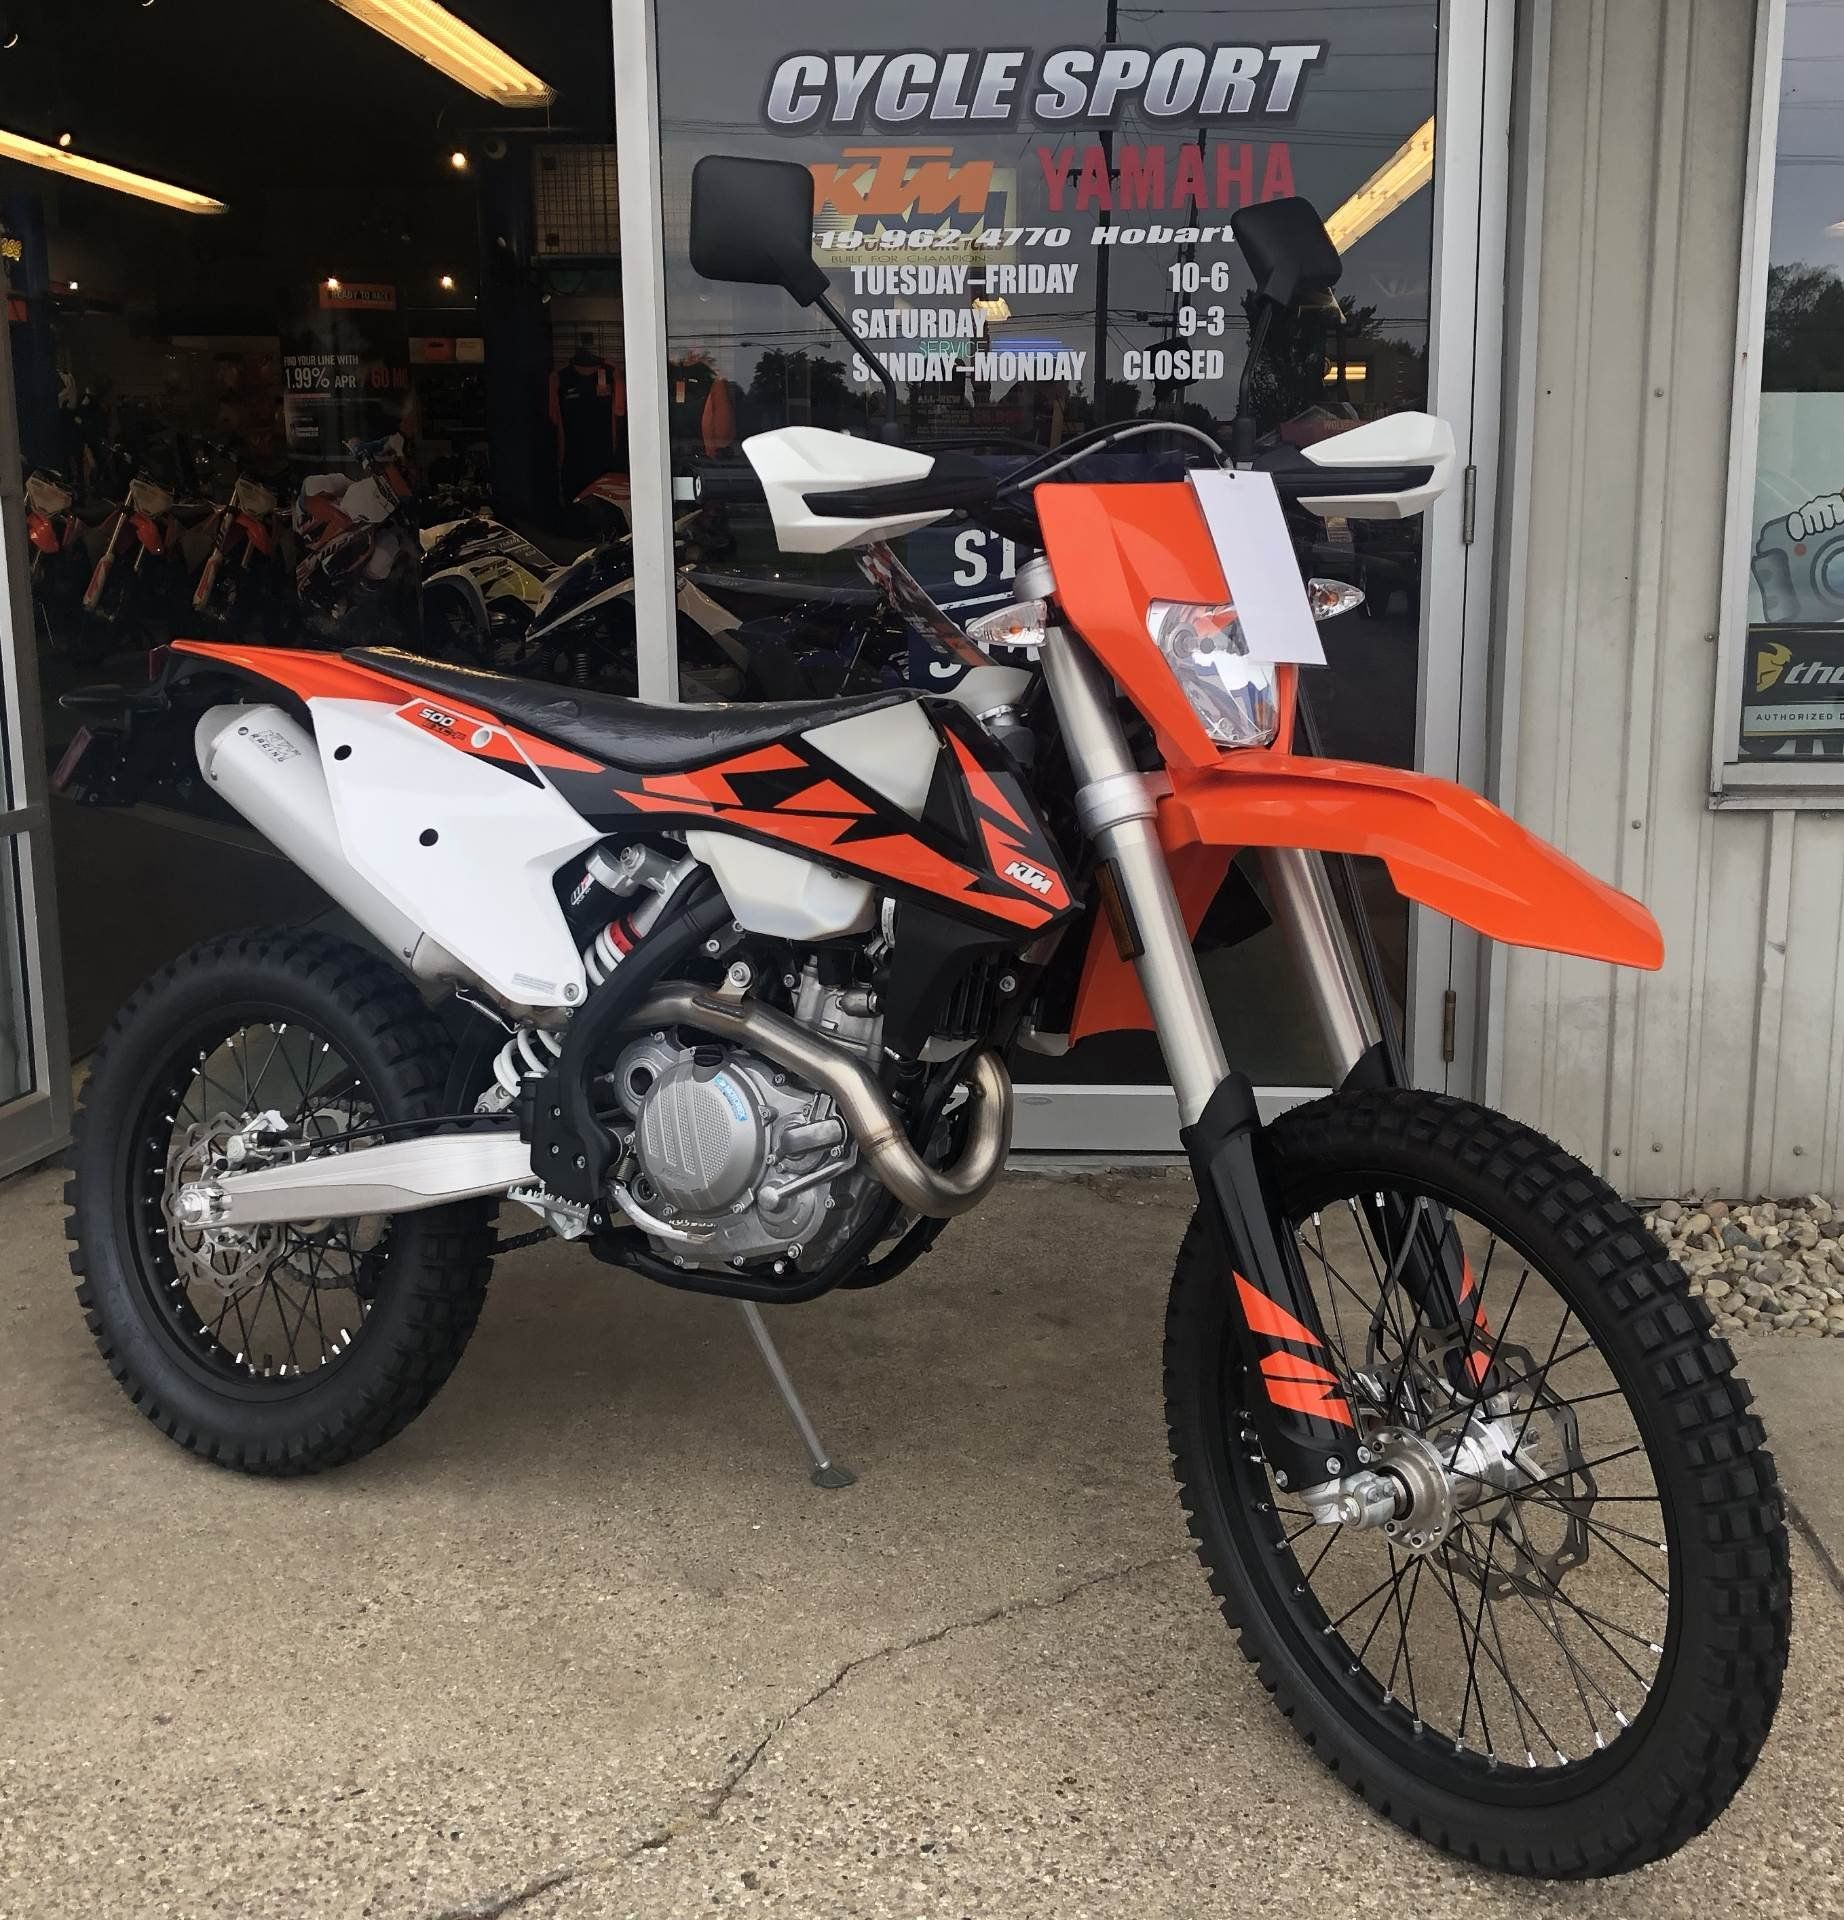 2018 Ktm 500 Exc Style From New 2018 Ktm 500 Exc F Motorcycles In